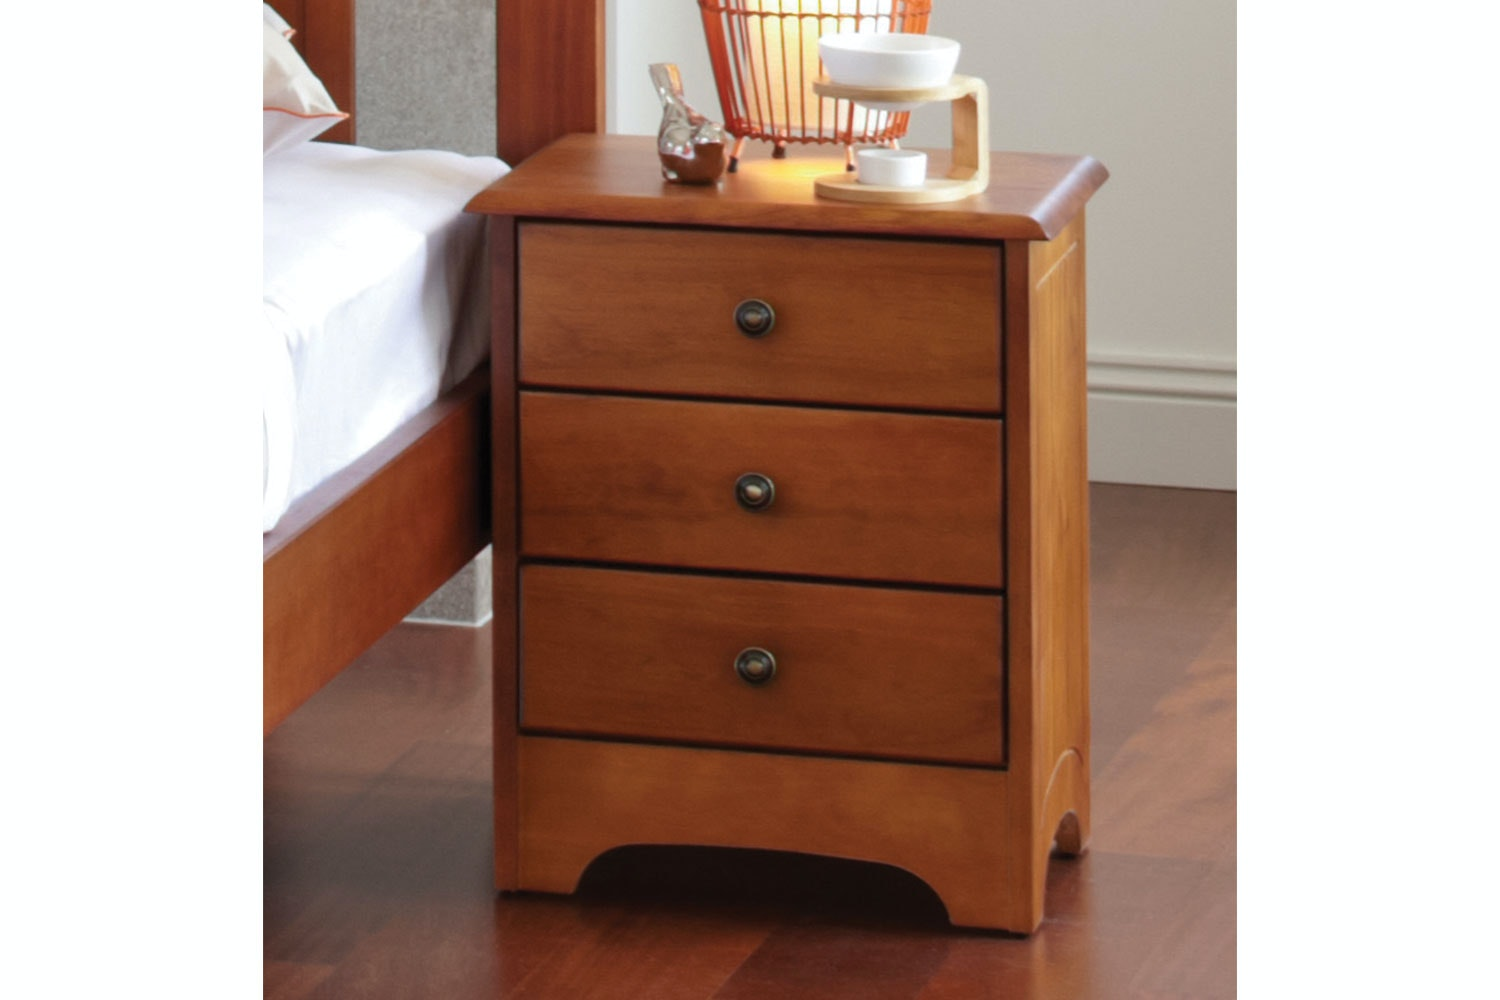 Calais 3 Drawer Bedside Table by Coastwood - WS Rimu